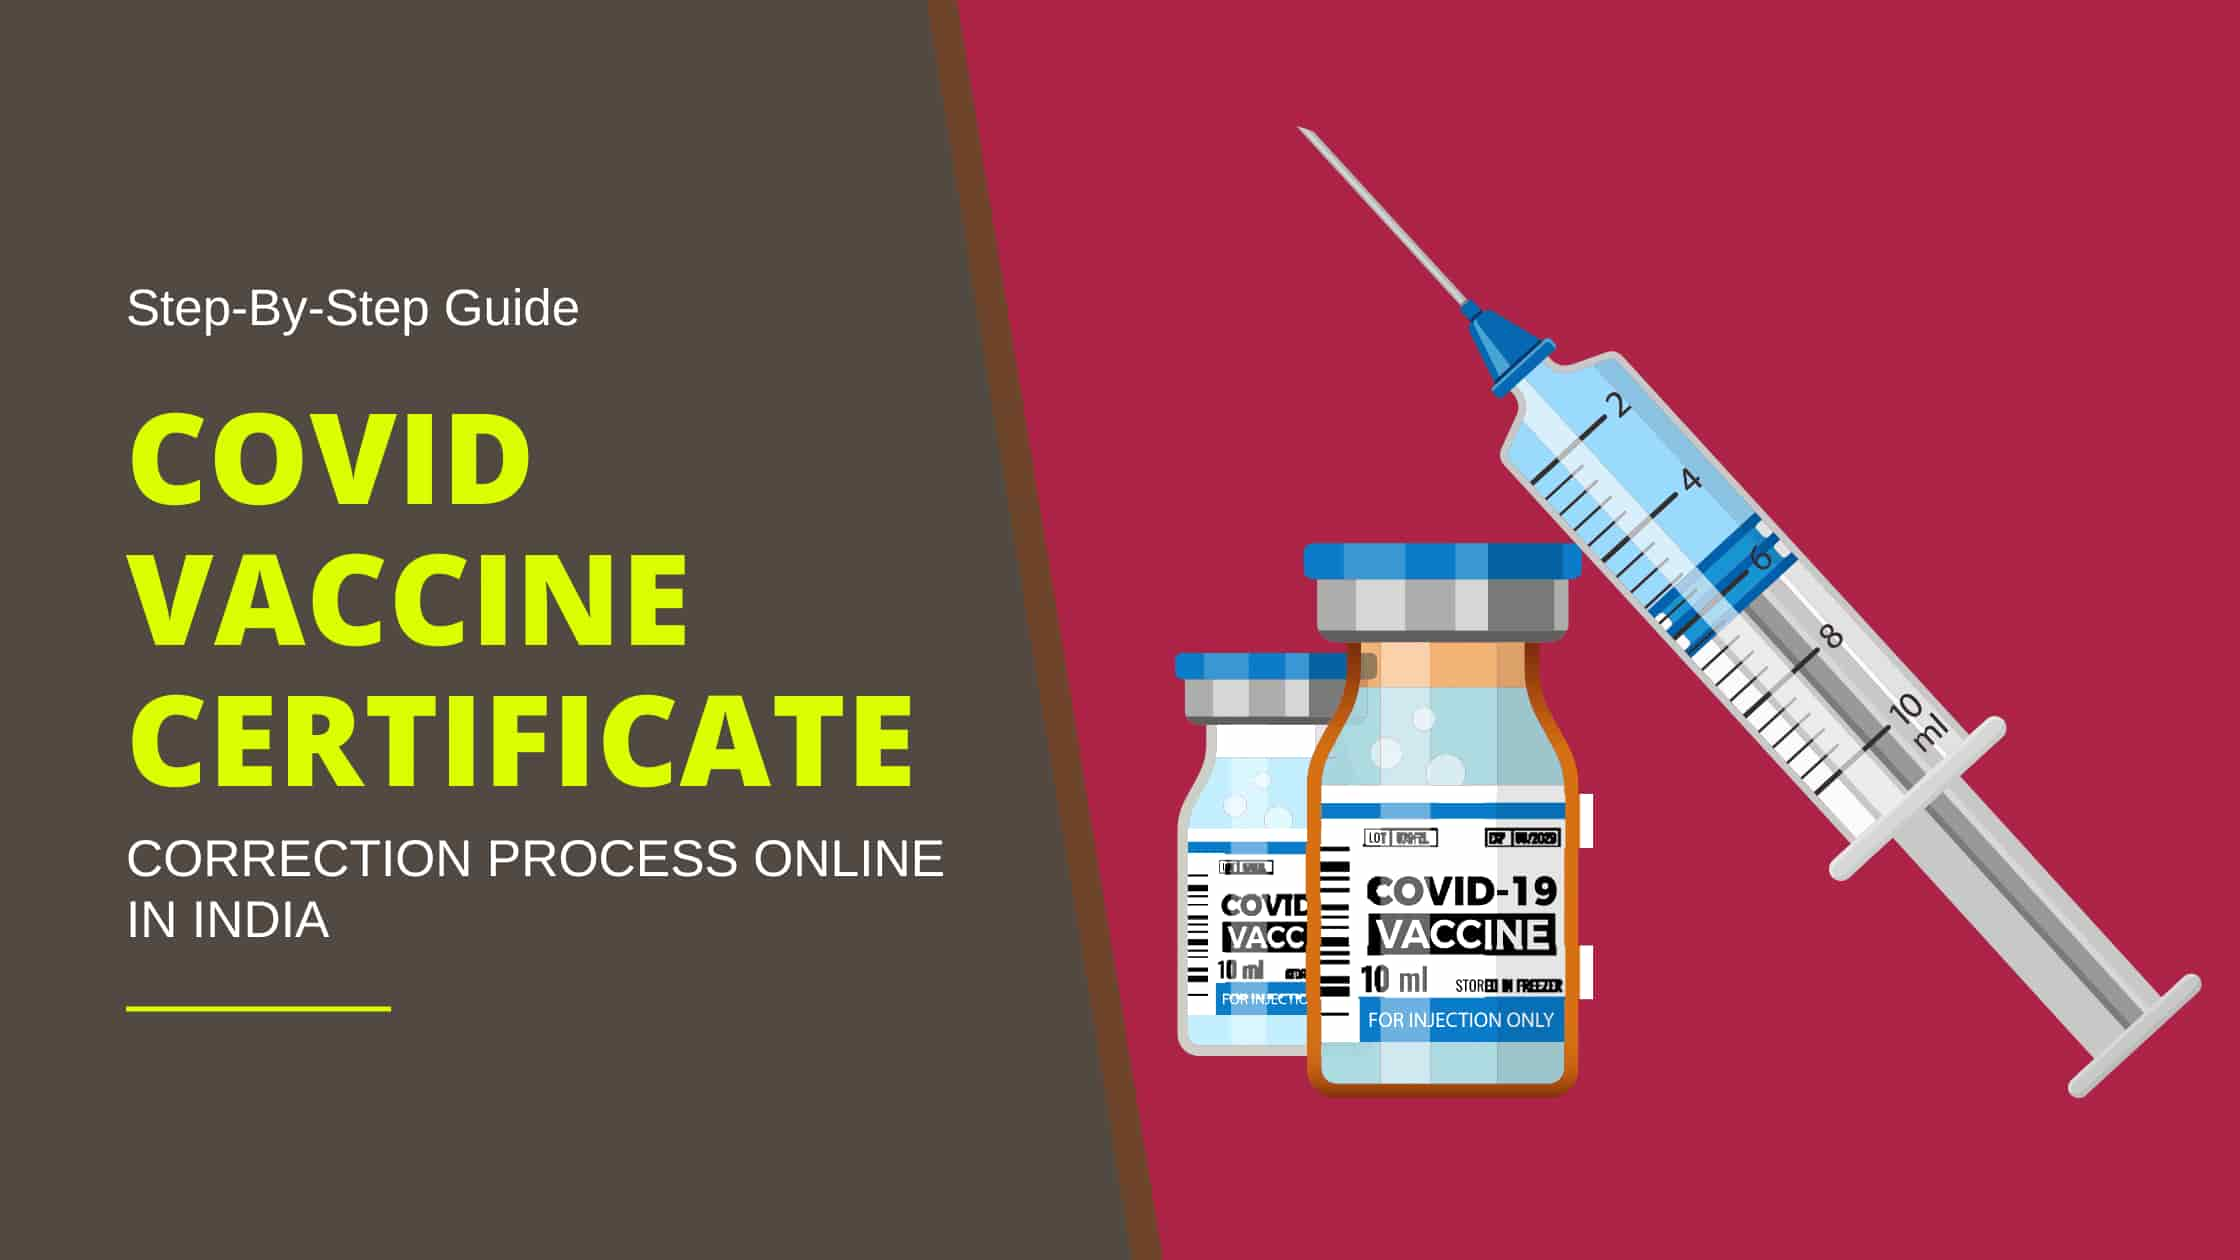 Covid Vaccine Certificate correction process online in India